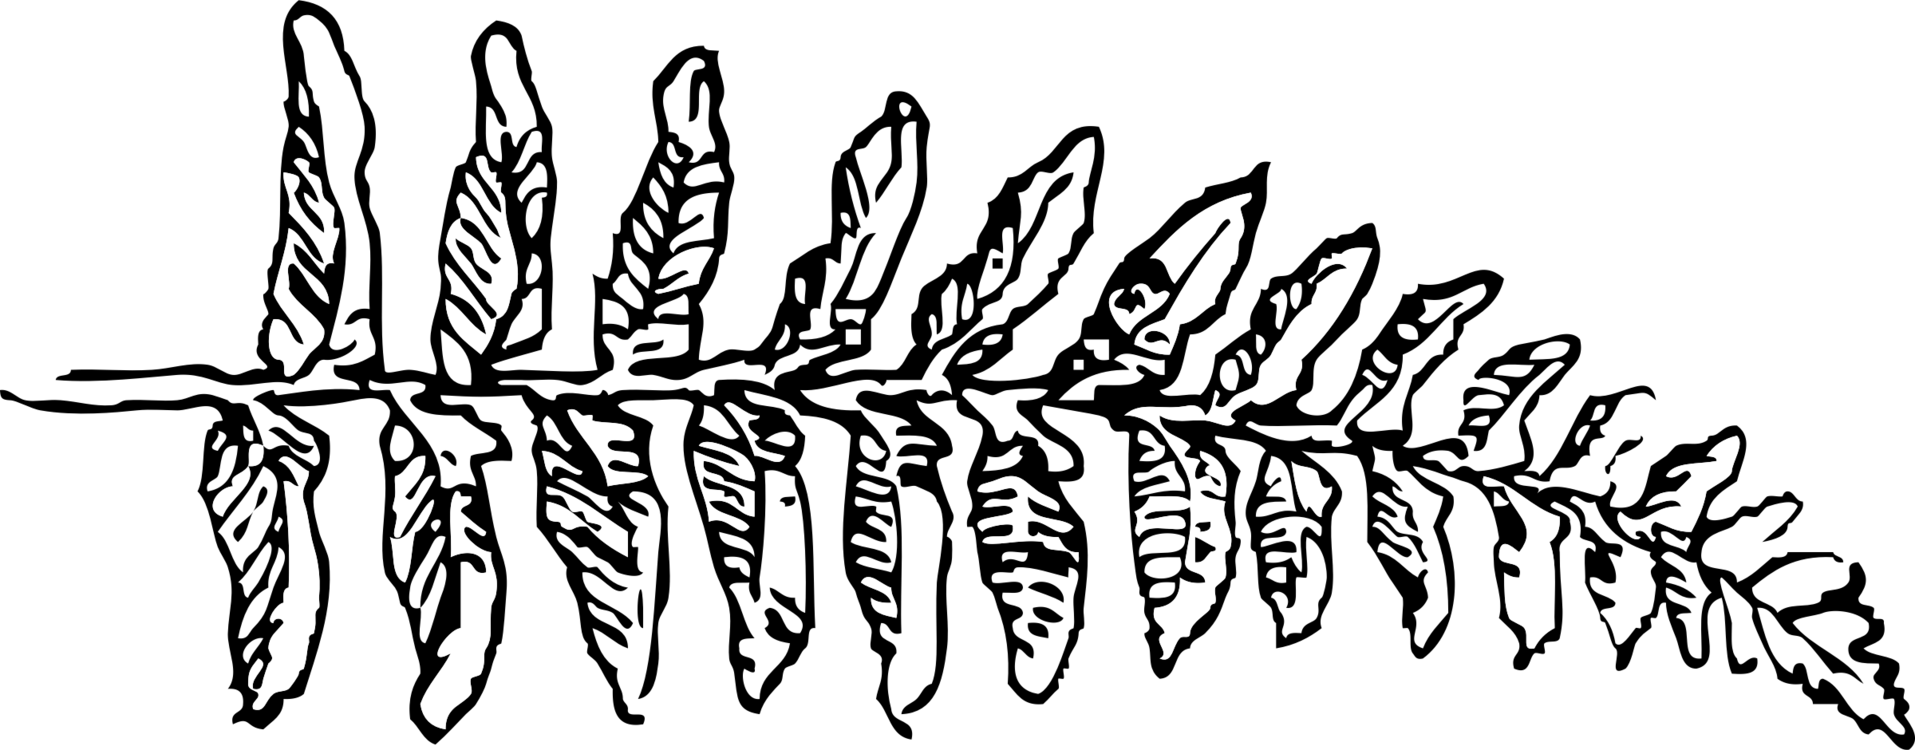 Plant twig png royalty. Fern clipart line art